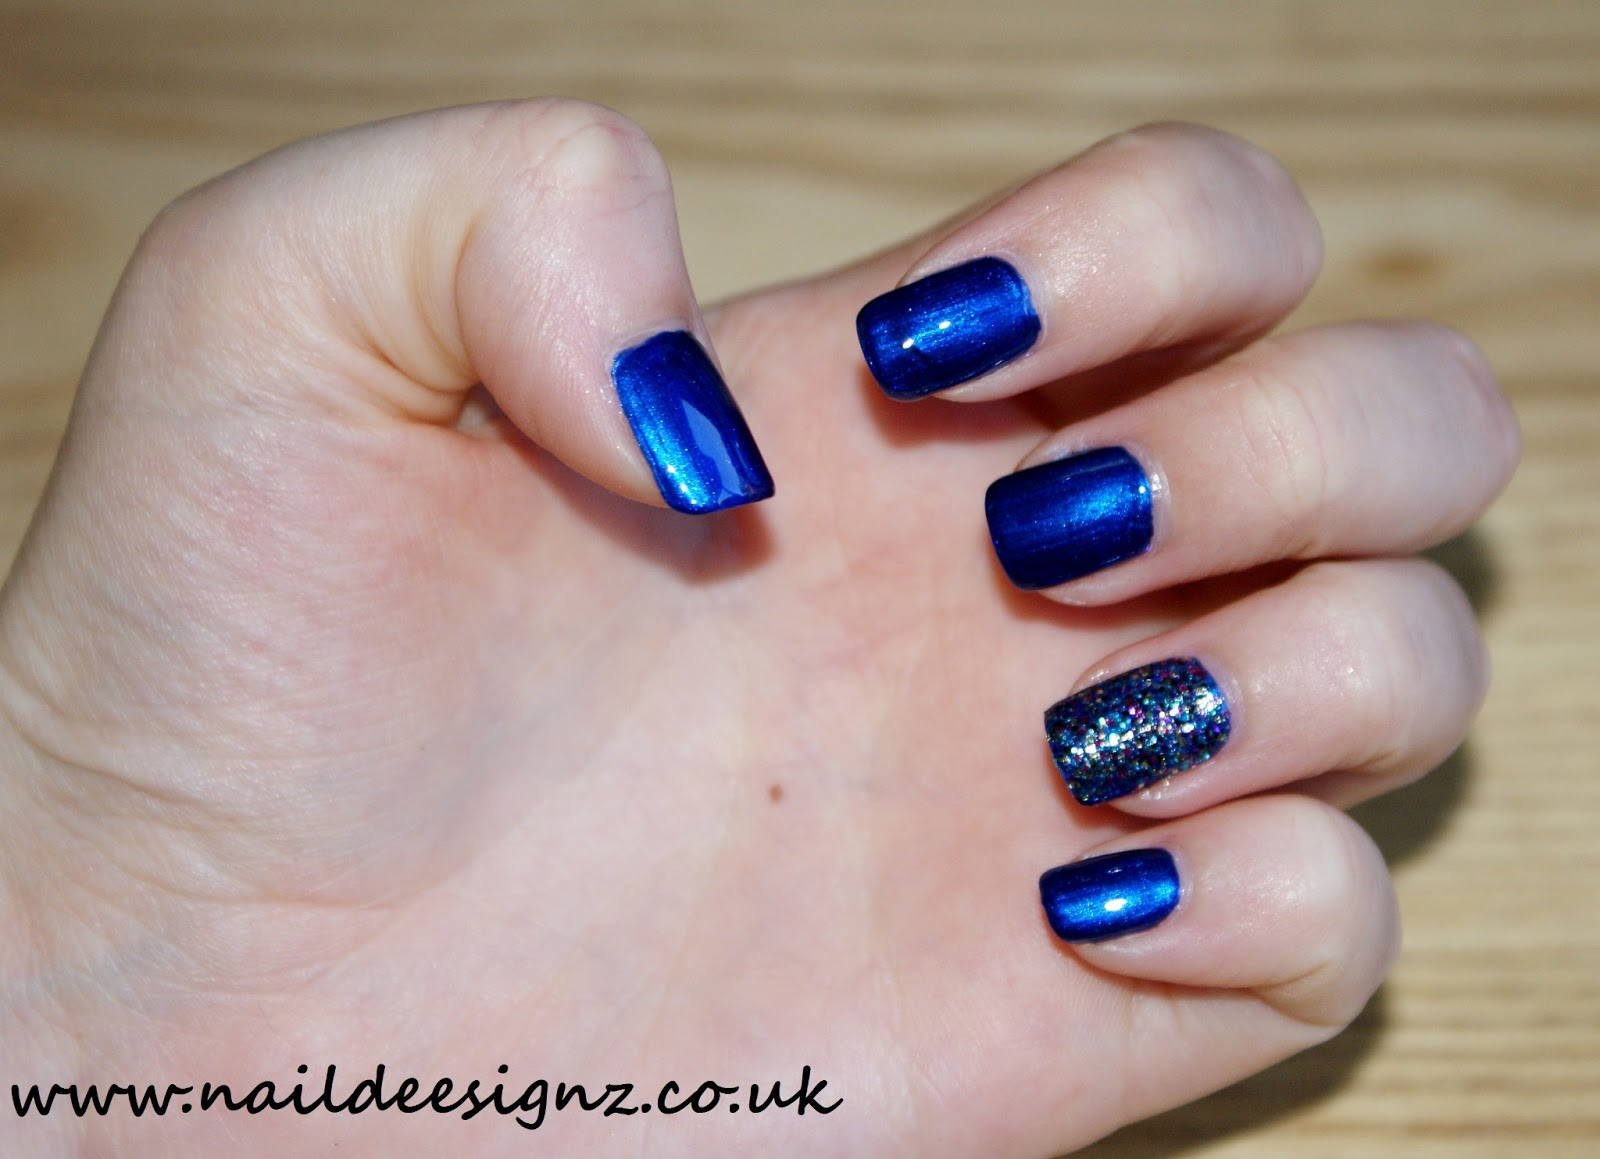 Easy at home nail designs for short nails home design christine 39 s nail designs easy nail designs for short nails blue with g prinsesfo Images